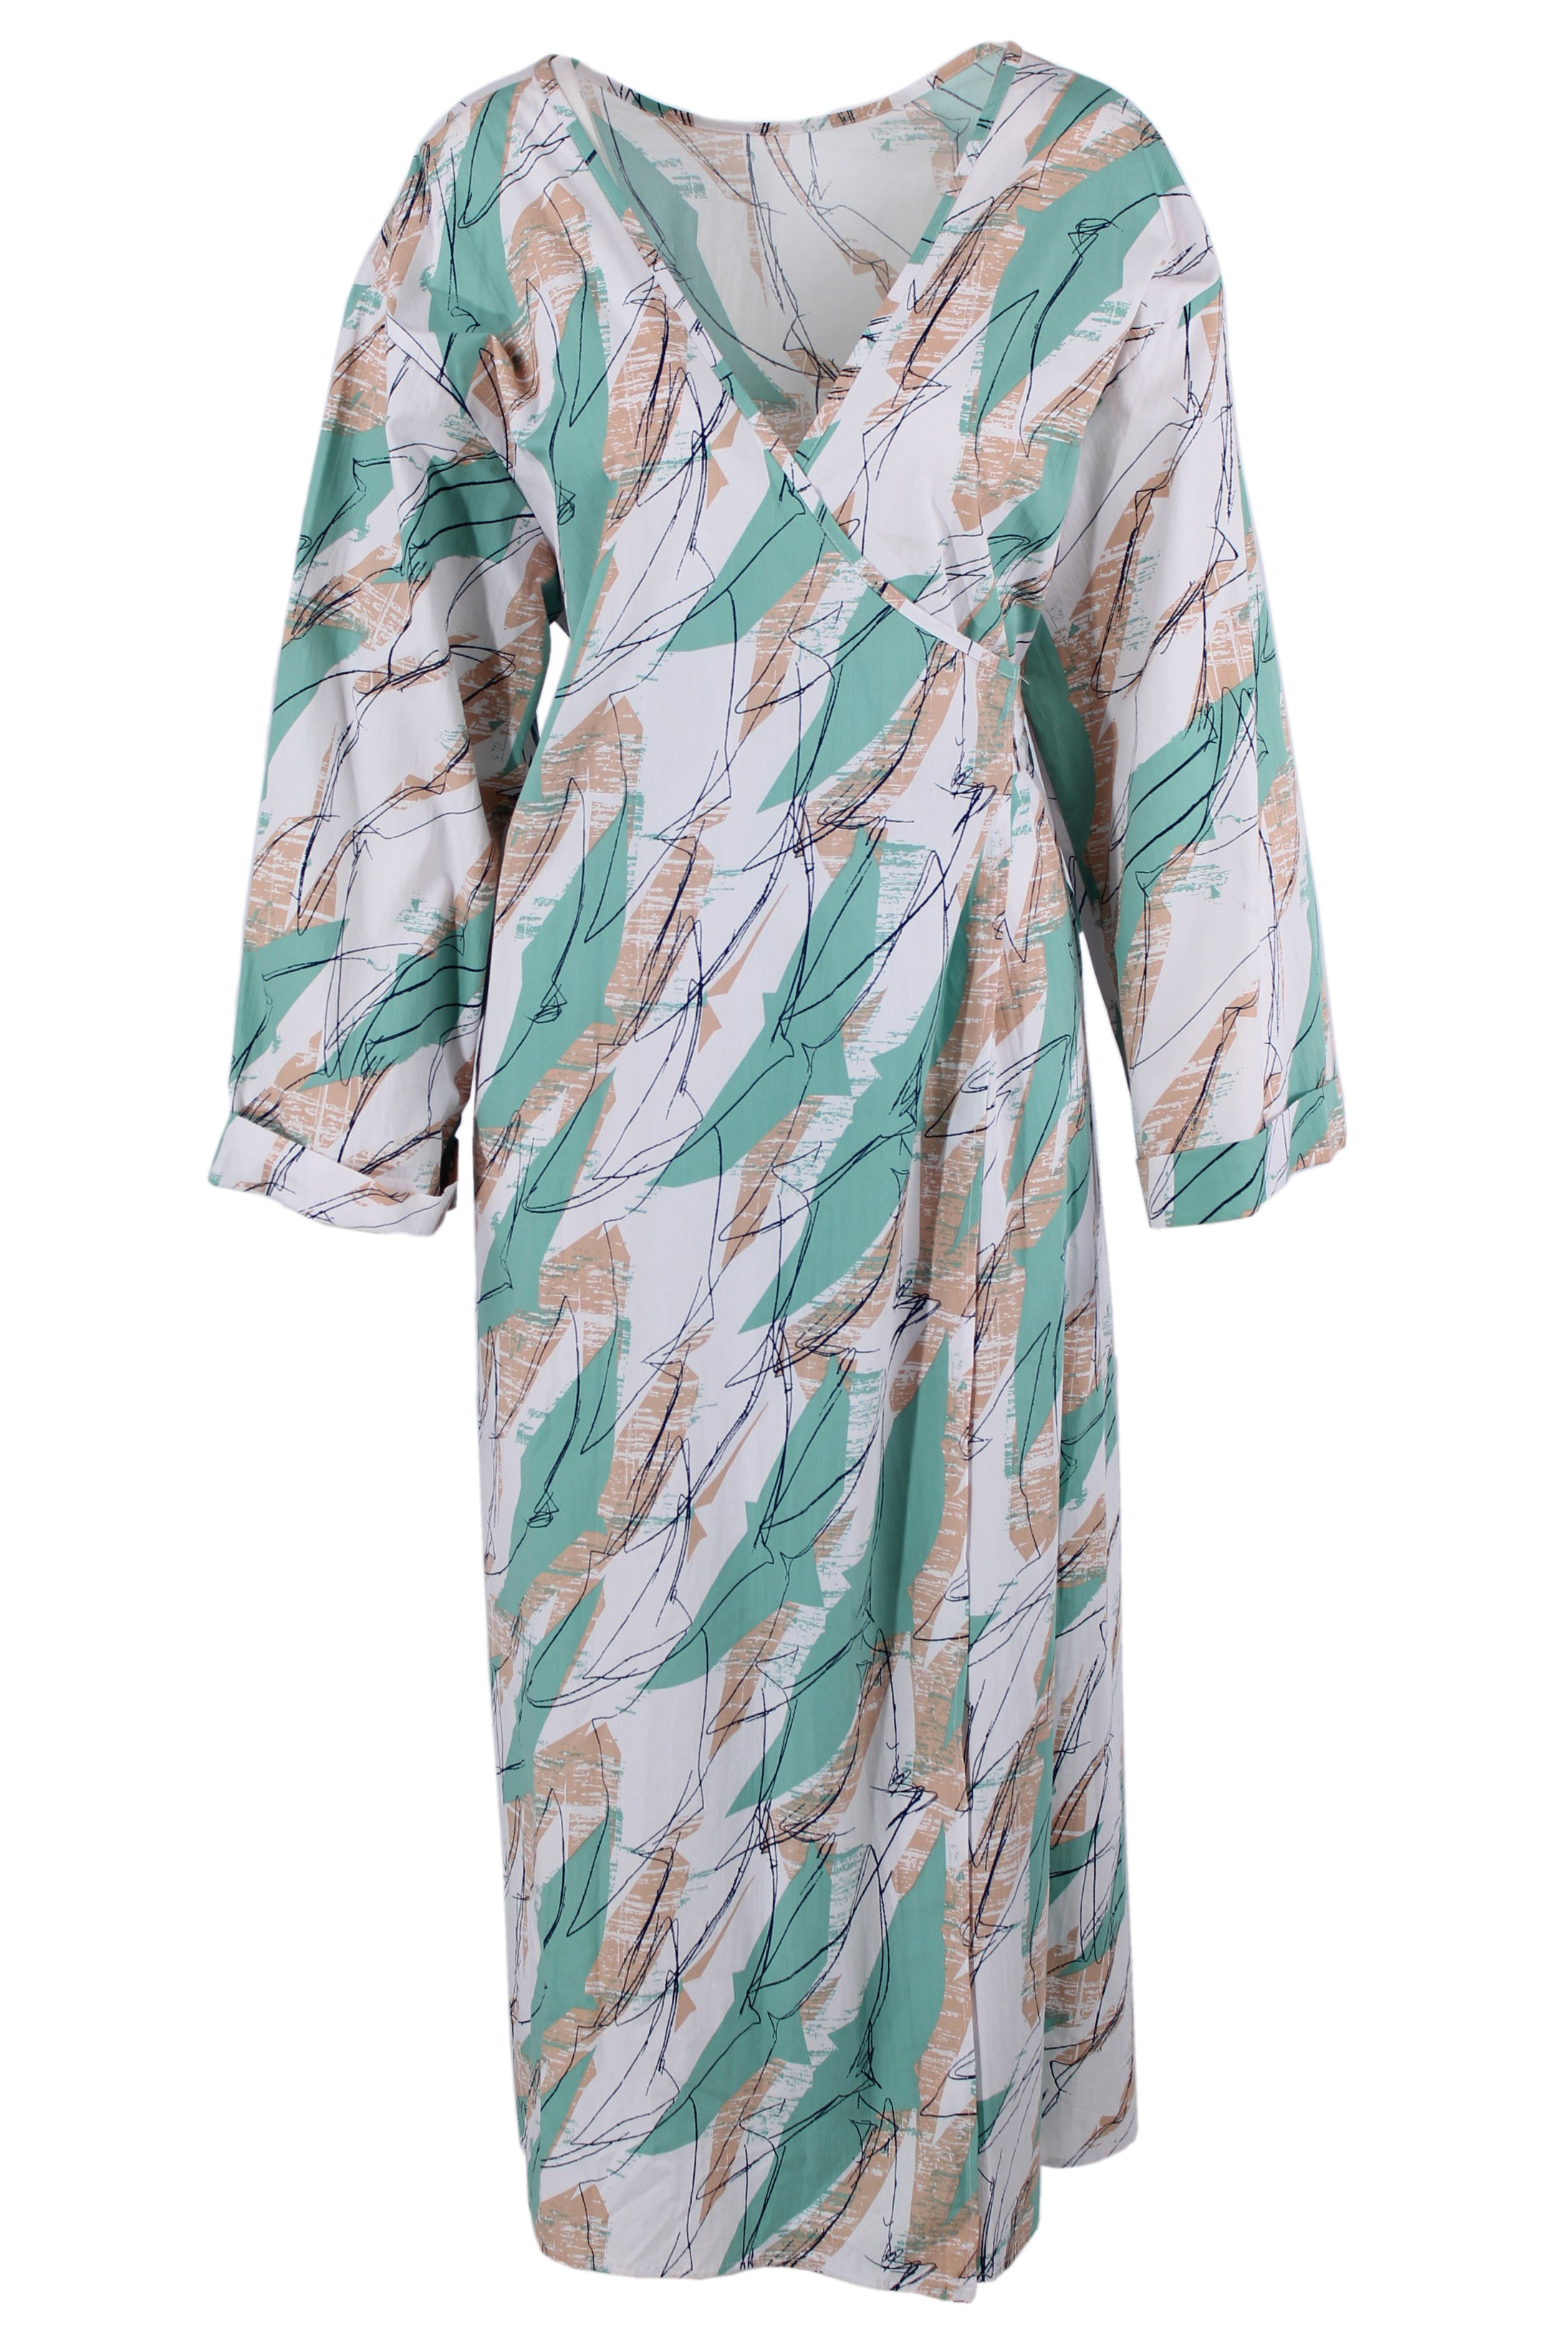 shop peche white & mint green print wrap dress. features open sleeves, a v neckline, belt & wrap fastening, & two side pockets. midaxi length.